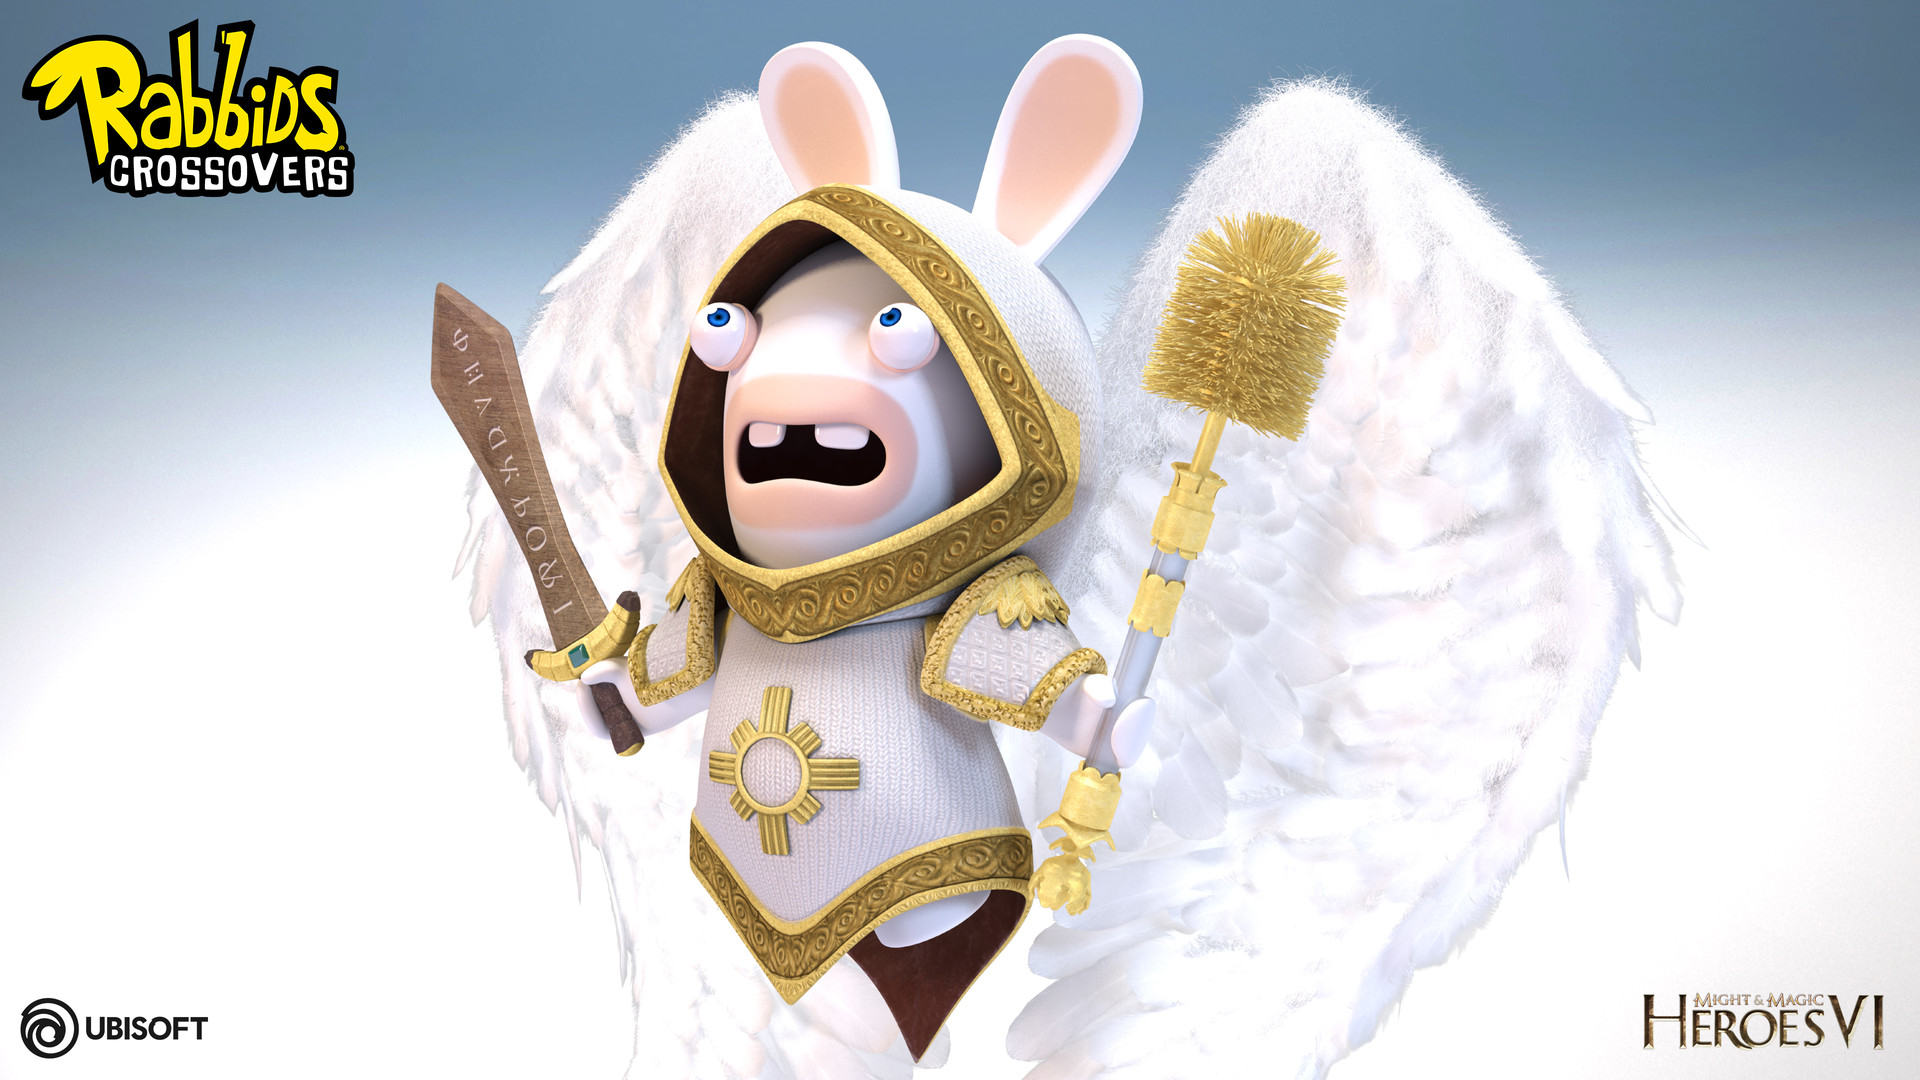 Thomas veyrat rbd rabbids crossovers hmm